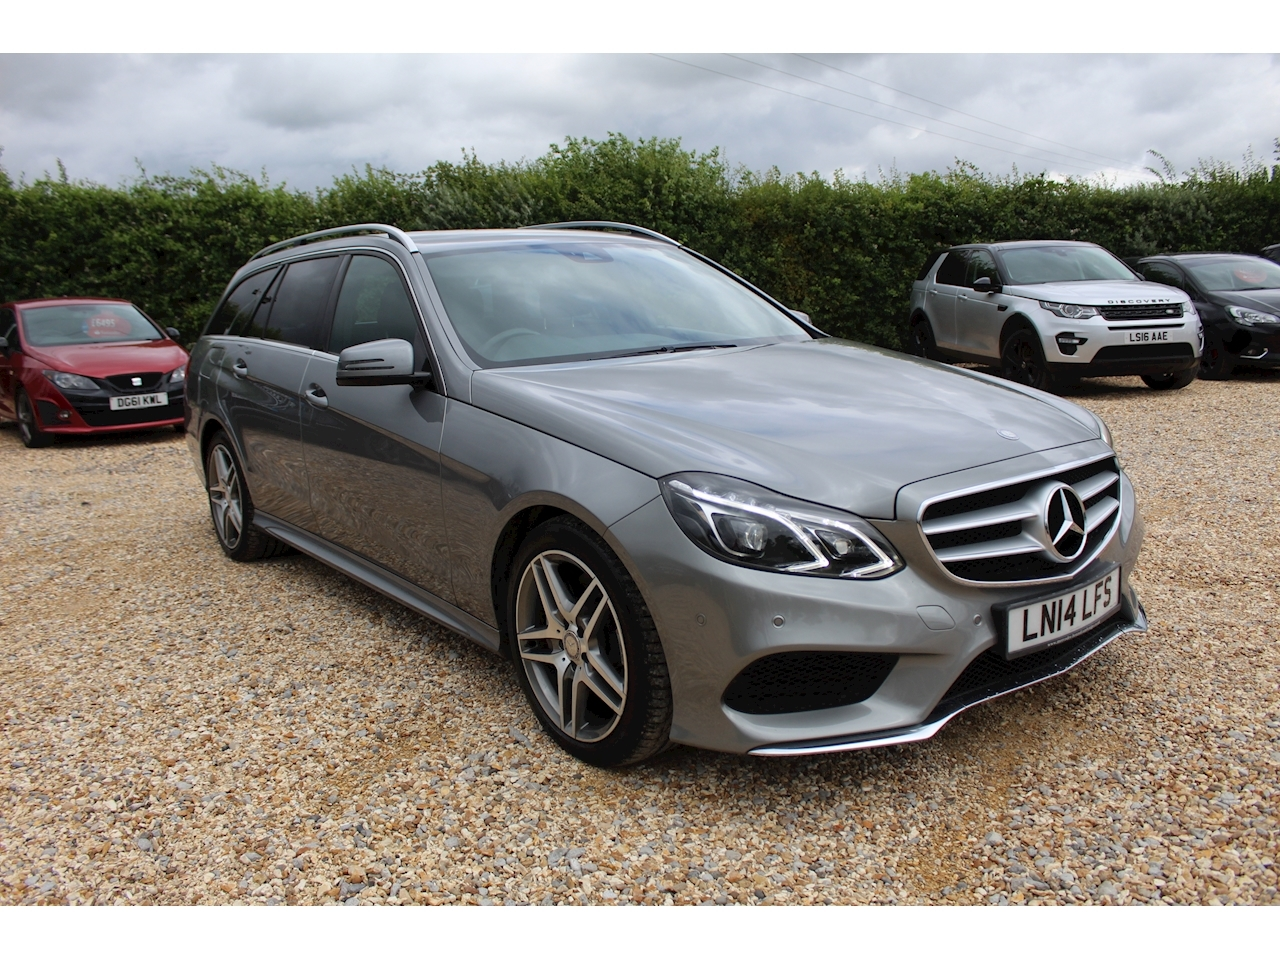 Mercedes-Benz E Class E350 Bluetec Amg Sport Estate 3.0 Automatic Diesel